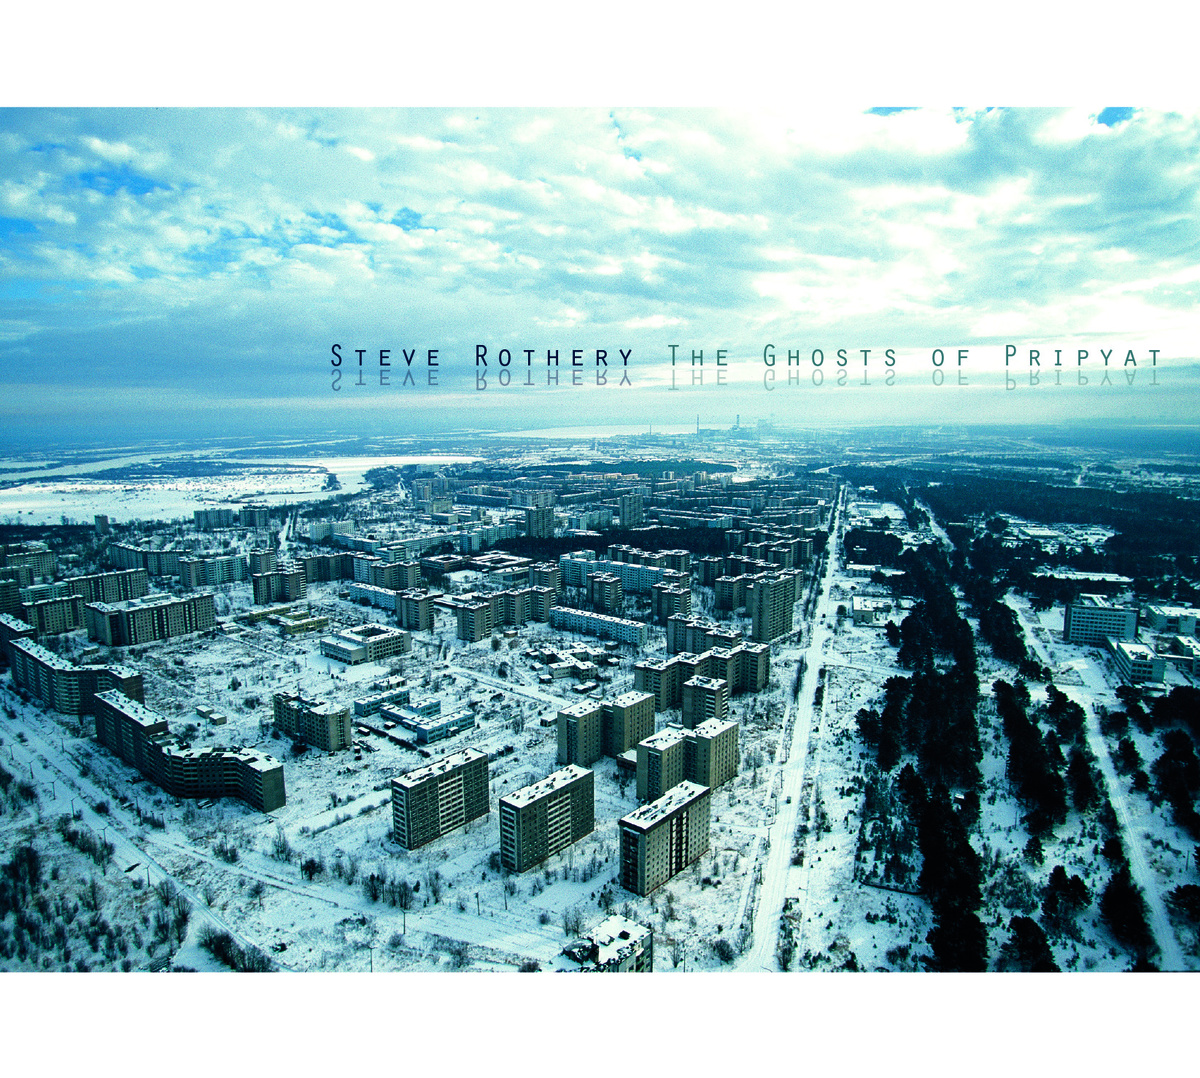 Steve Rothery to release 'The Ghosts Of Pripyat' through InsideOutMusic